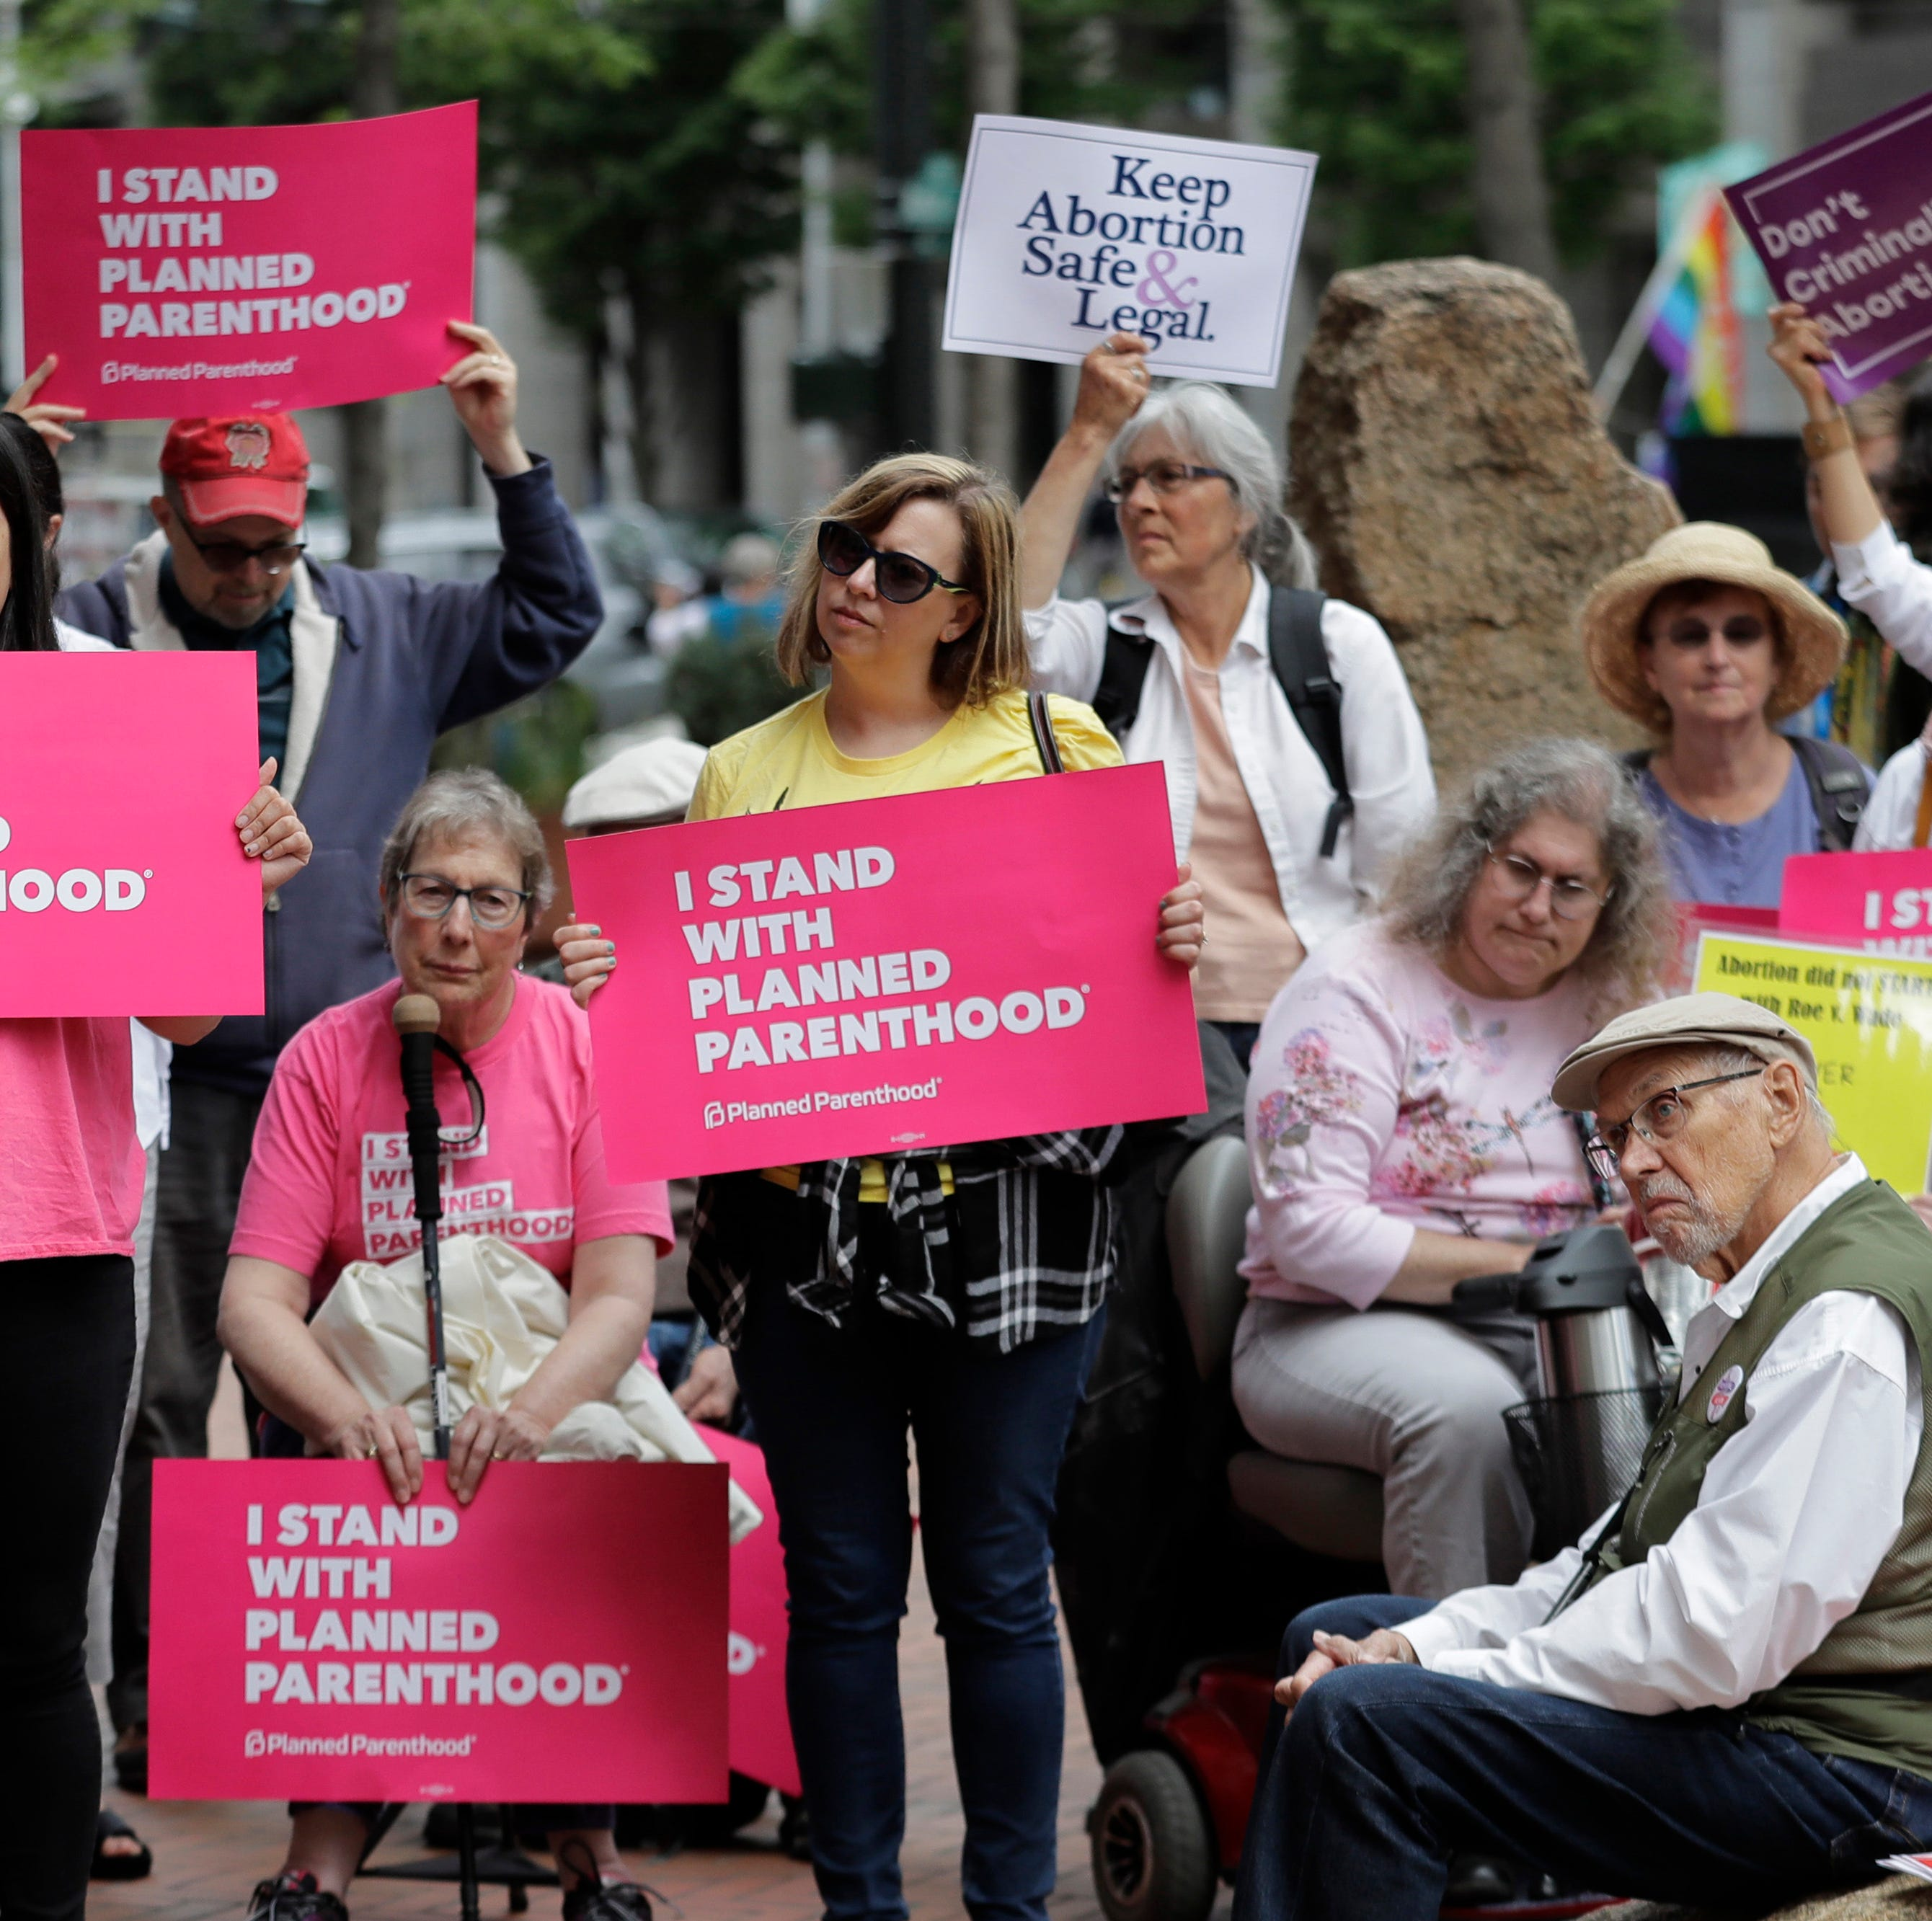 Supporters of Planned Parenthood demonstrated in Seattle this summer to protest Brett Kavanaugh's nomination to the Supreme Court.